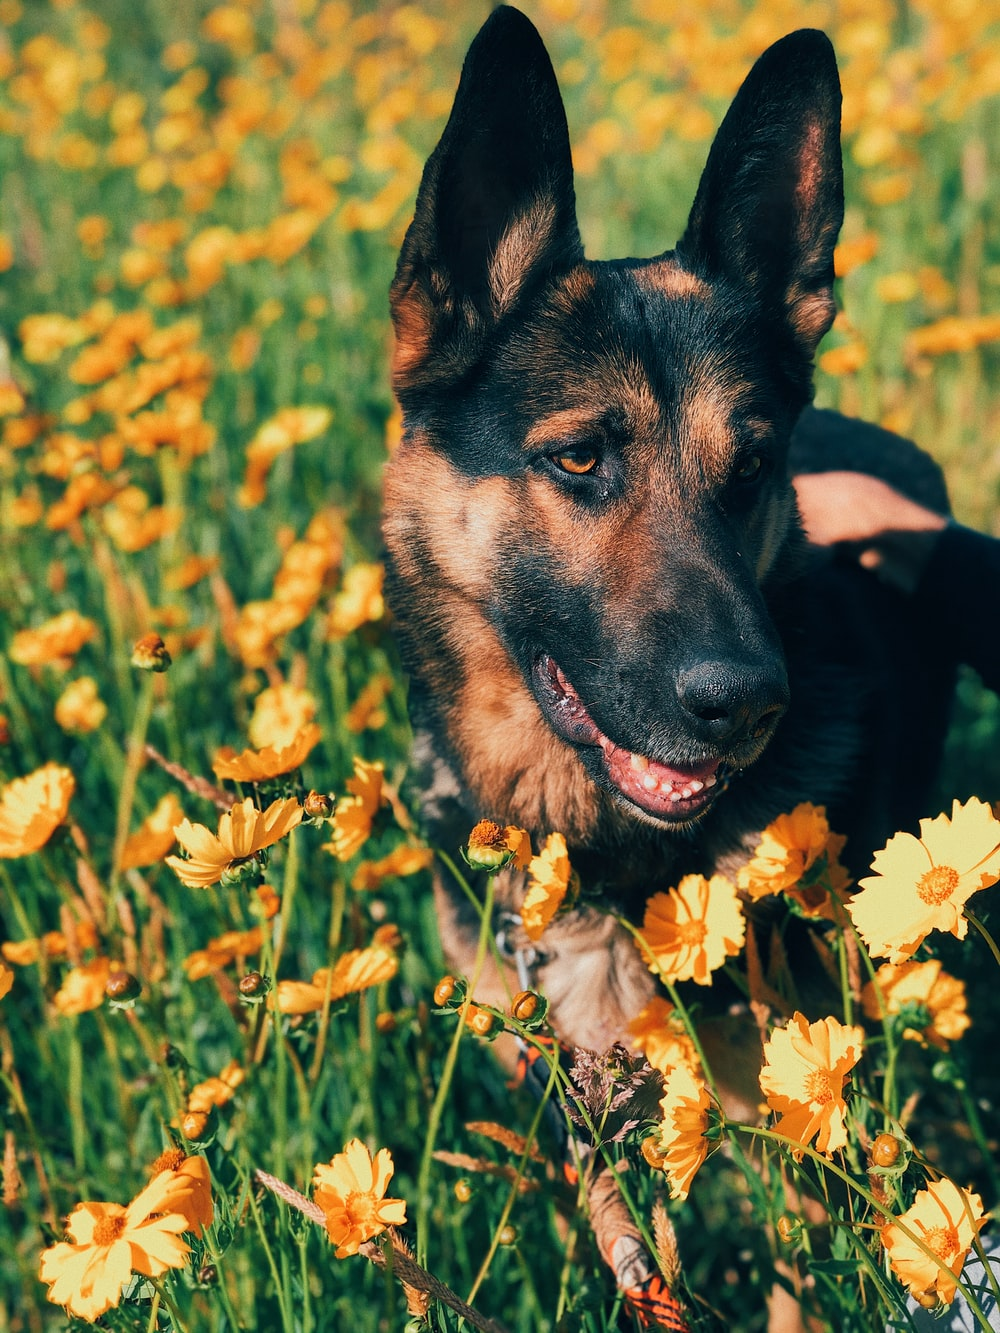 black and tan german shepherd puppy on yellow flower field during daytime